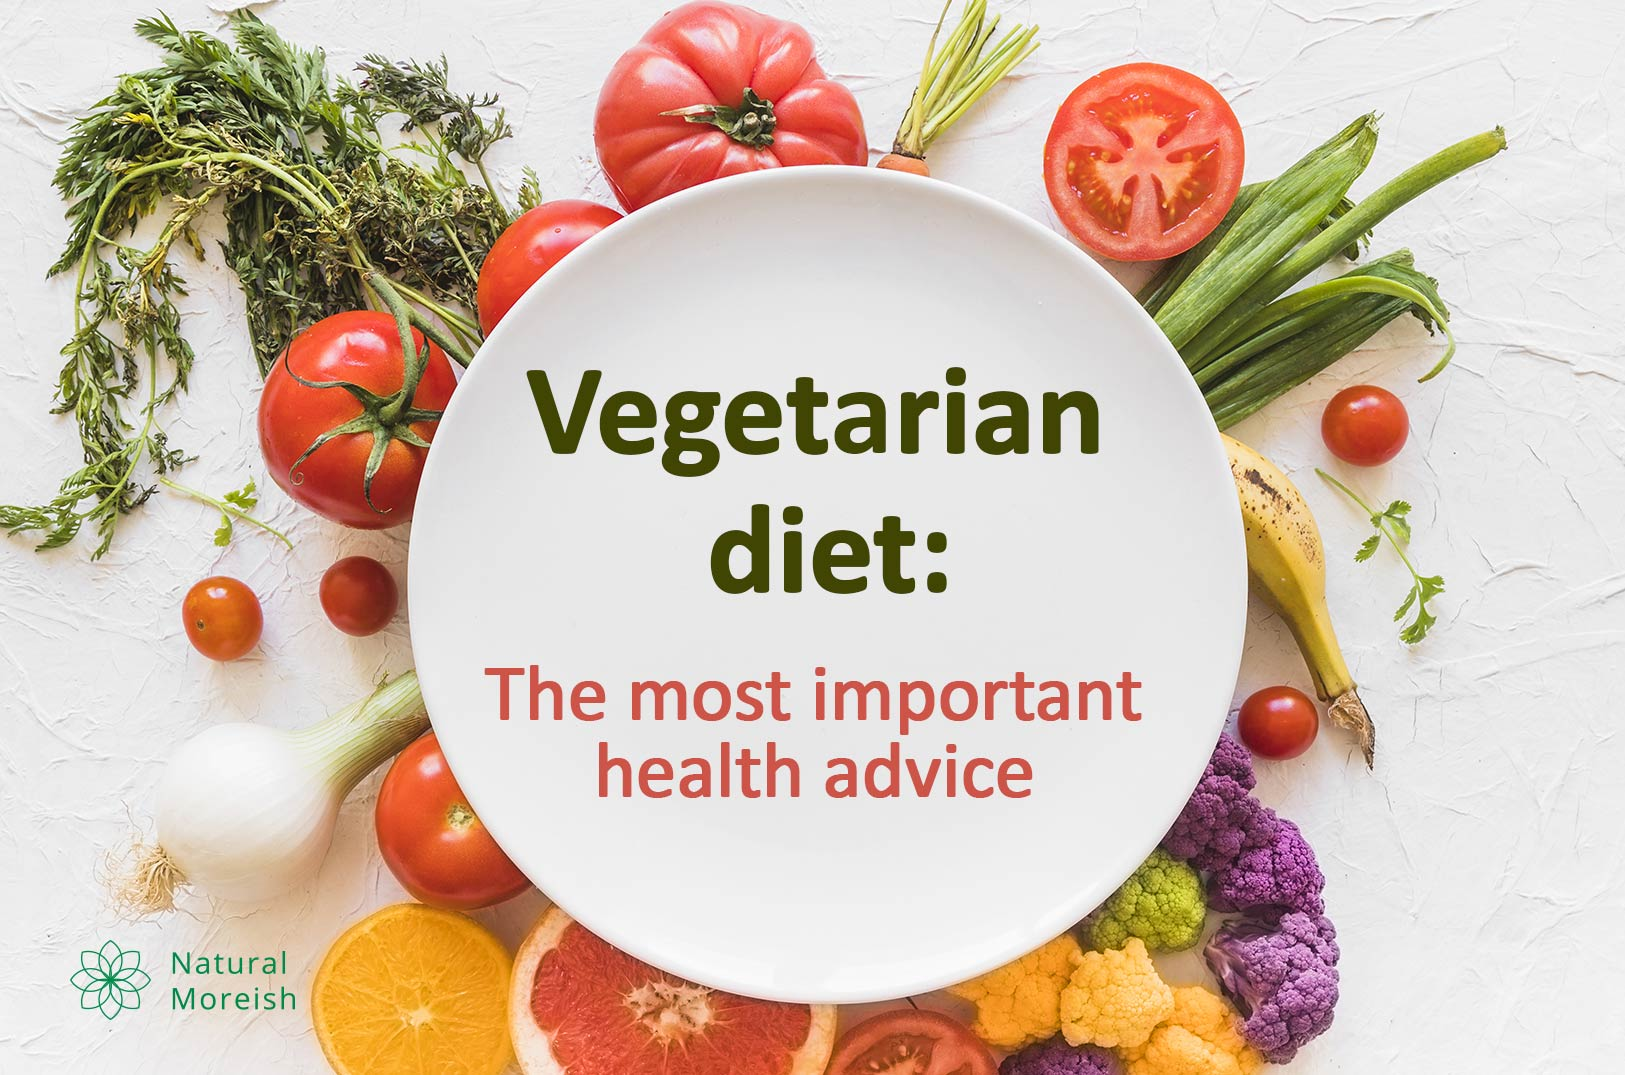 Vegetarian diet The most important health advice